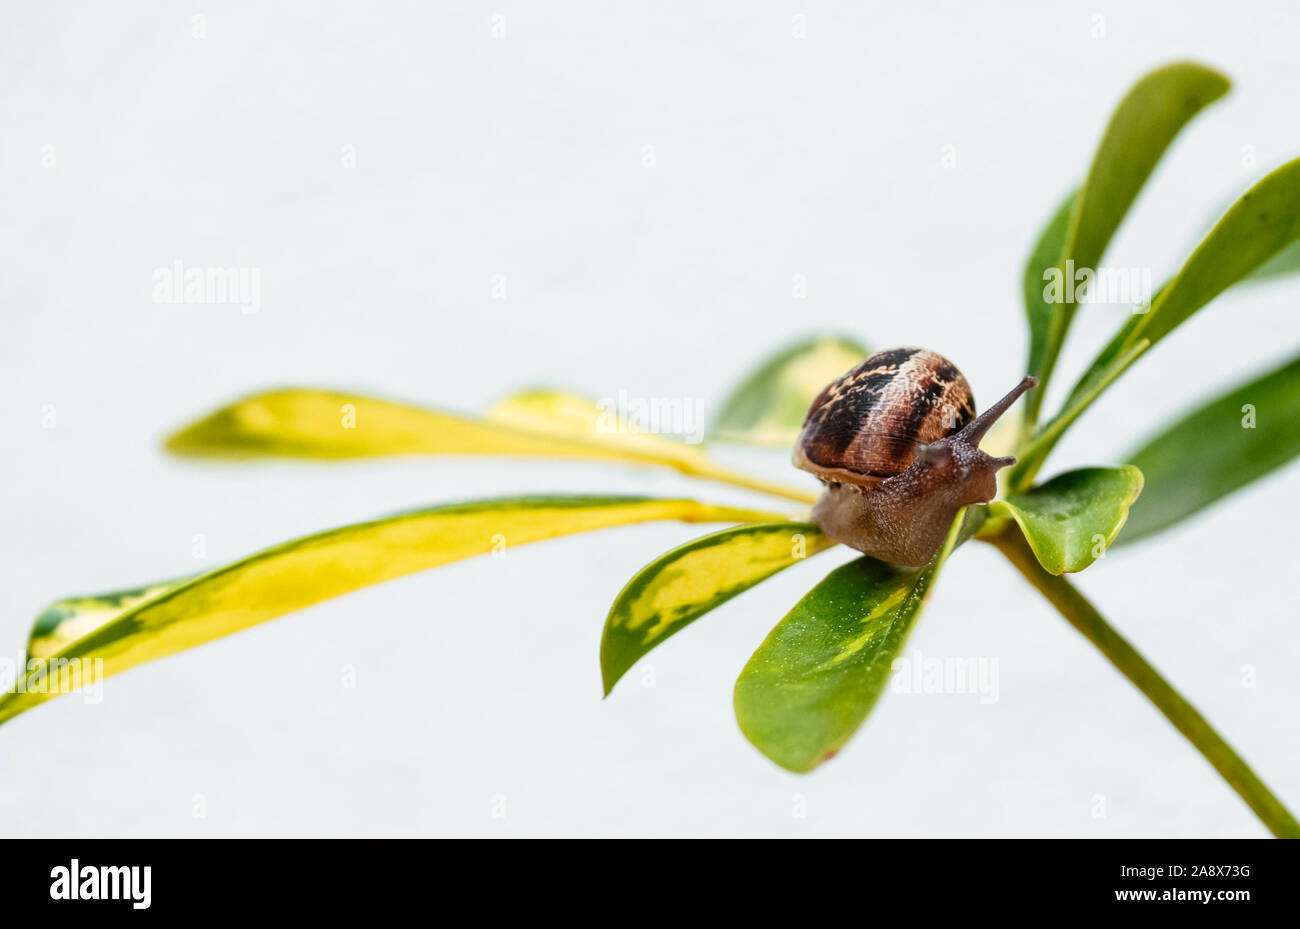 Common garden snail crawling on green leaf of plant Stock Photo